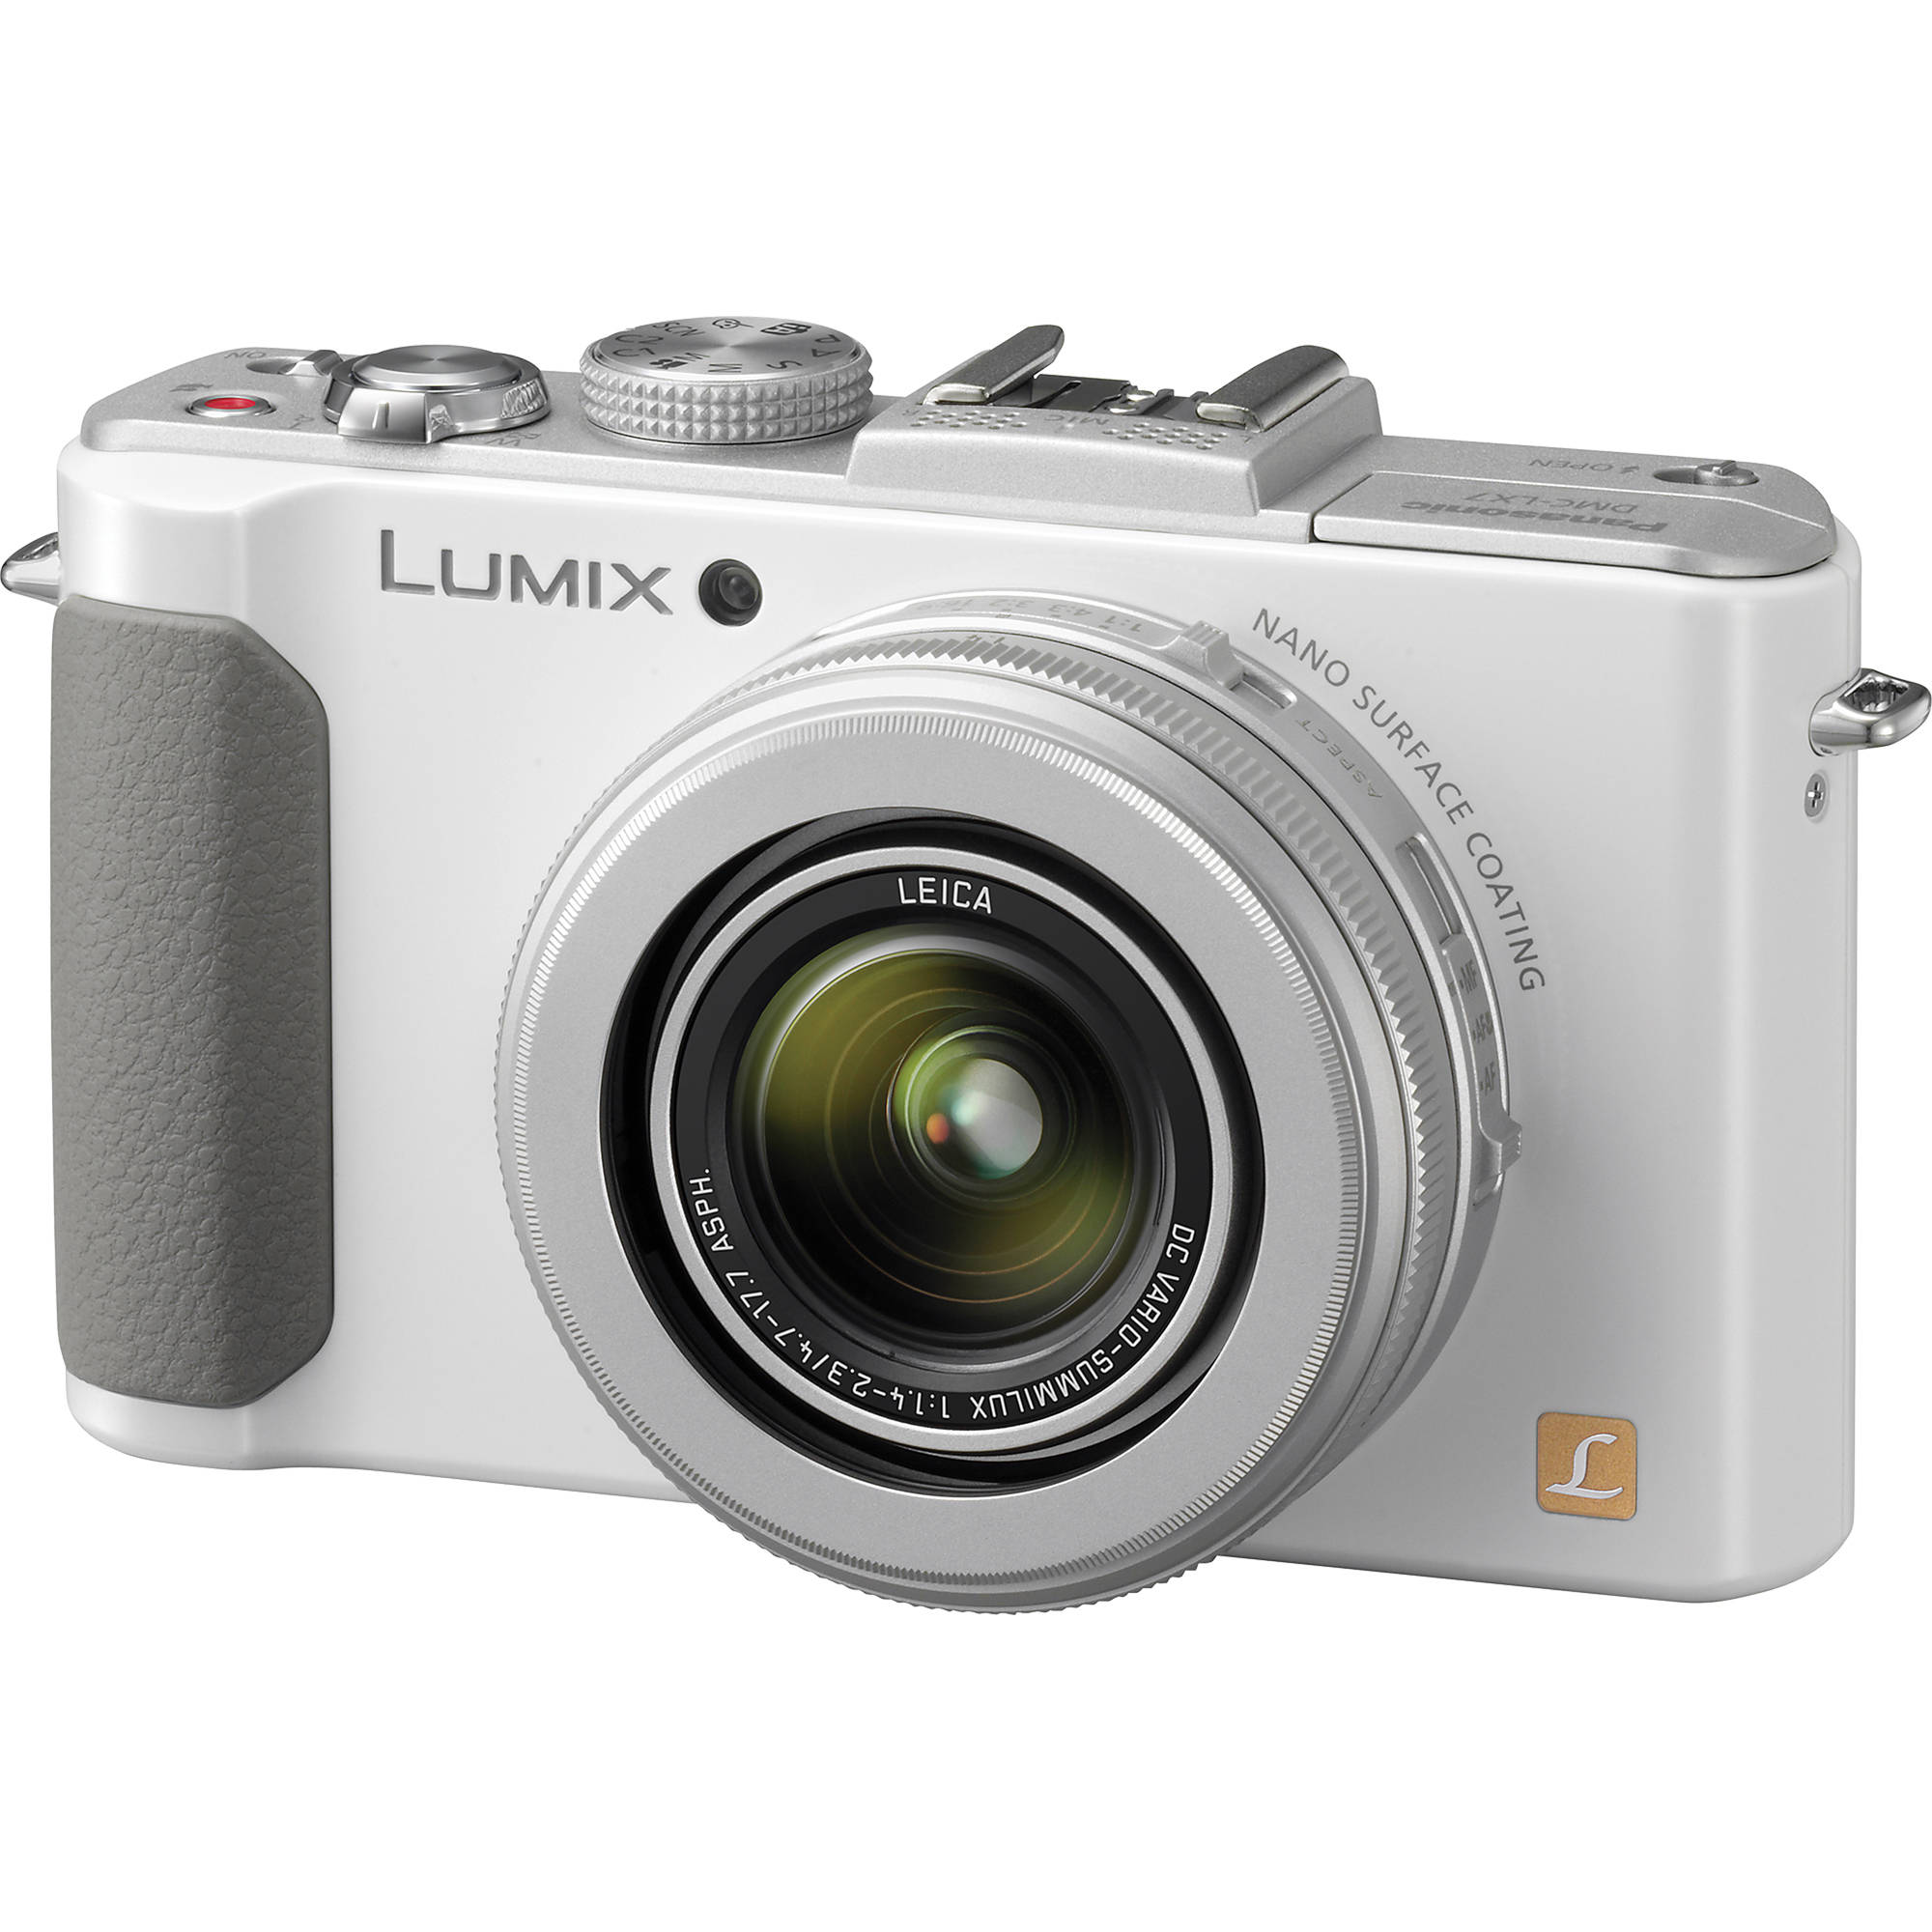 Panasonic Lumix DMC-LX7 Digital Camera (White) DMC-LX7W B&H